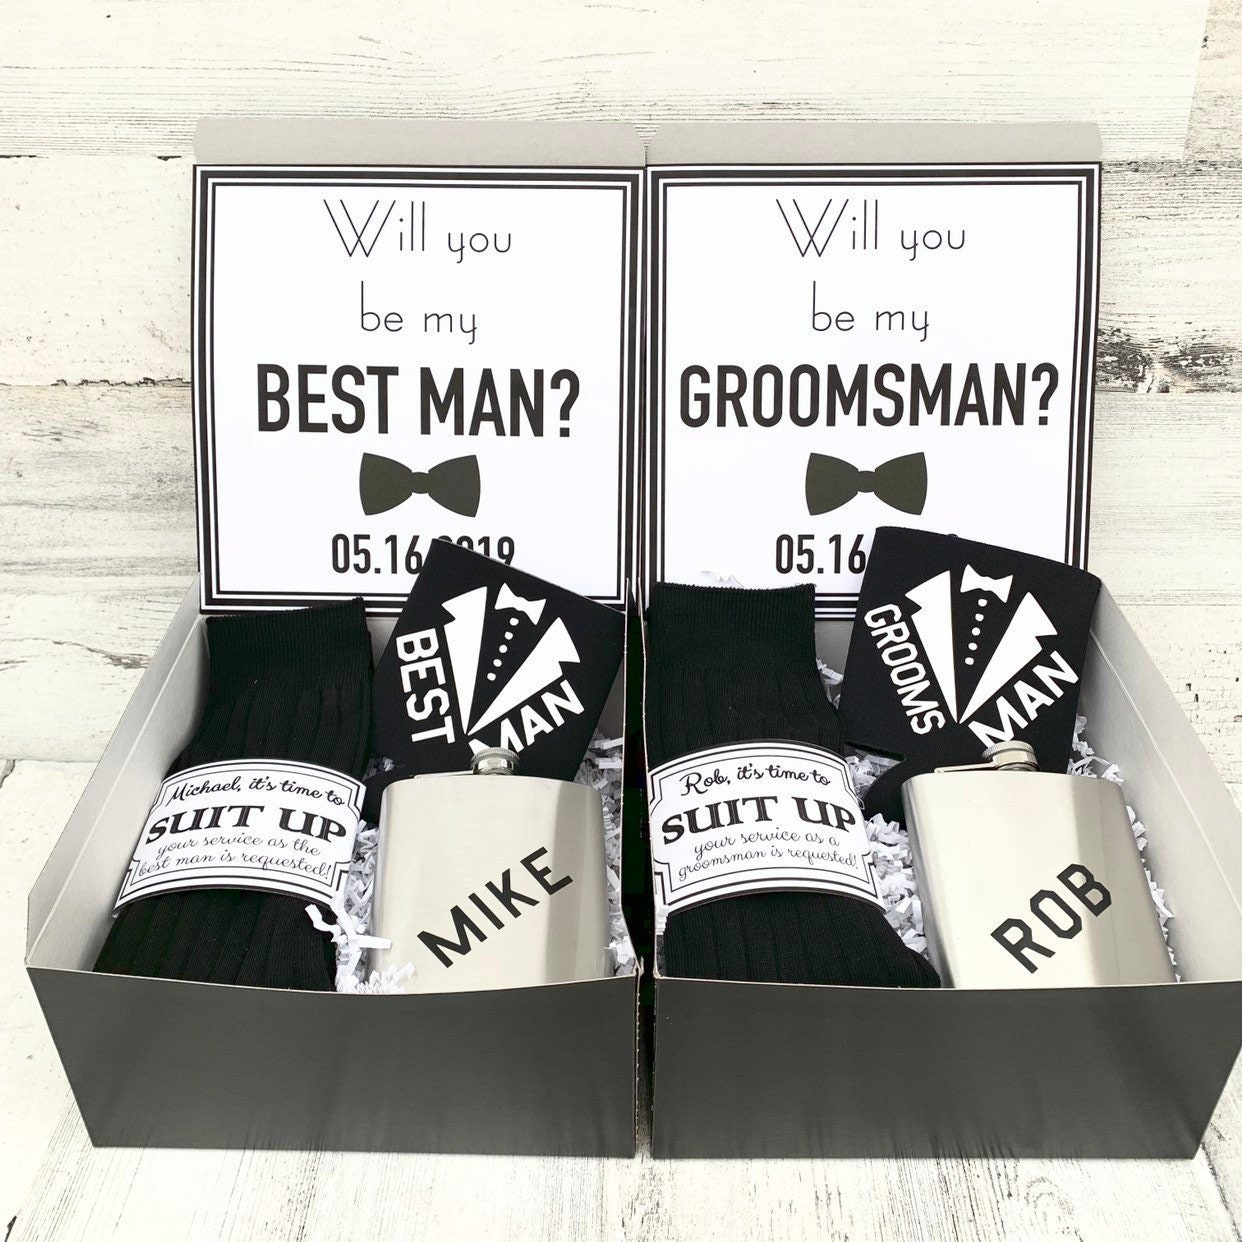 ... Man Gift Box. 1  sc 1 st  Before The Rings LLC & Best Man Gift Boxes - Thank you for being my Best Man or ...